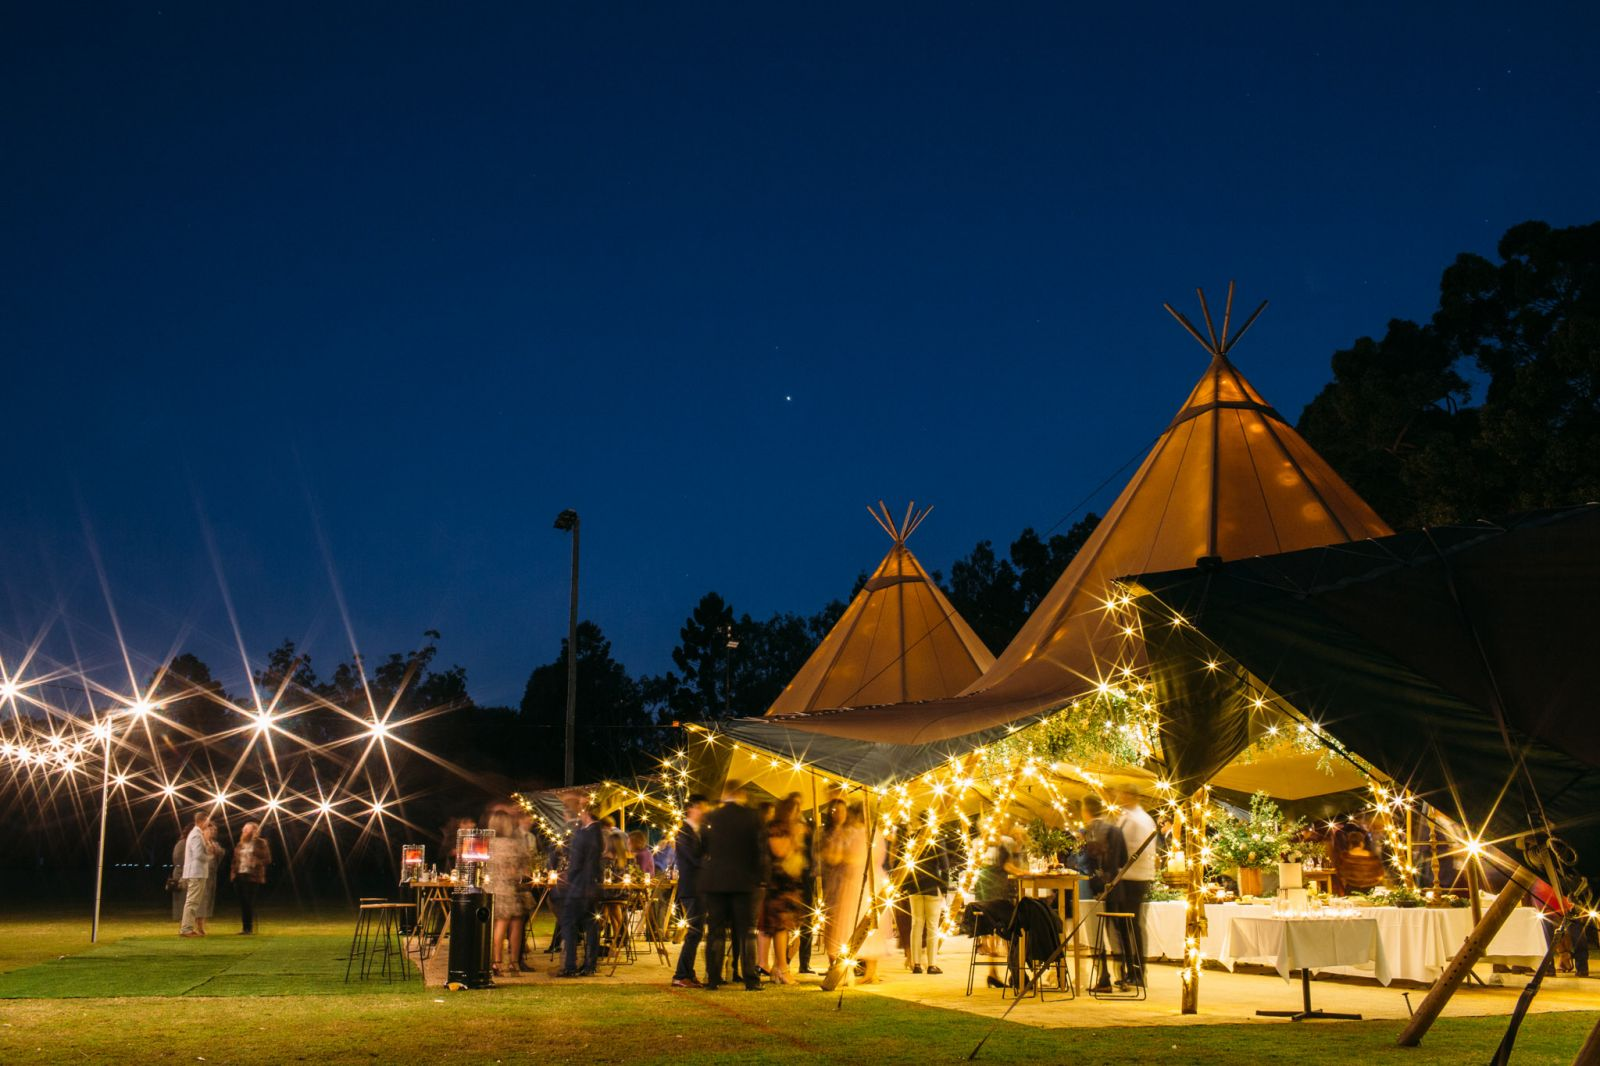 gold coast wedding, large tipi, large marquee hire, wedding venue, tipi, gold coast tipis